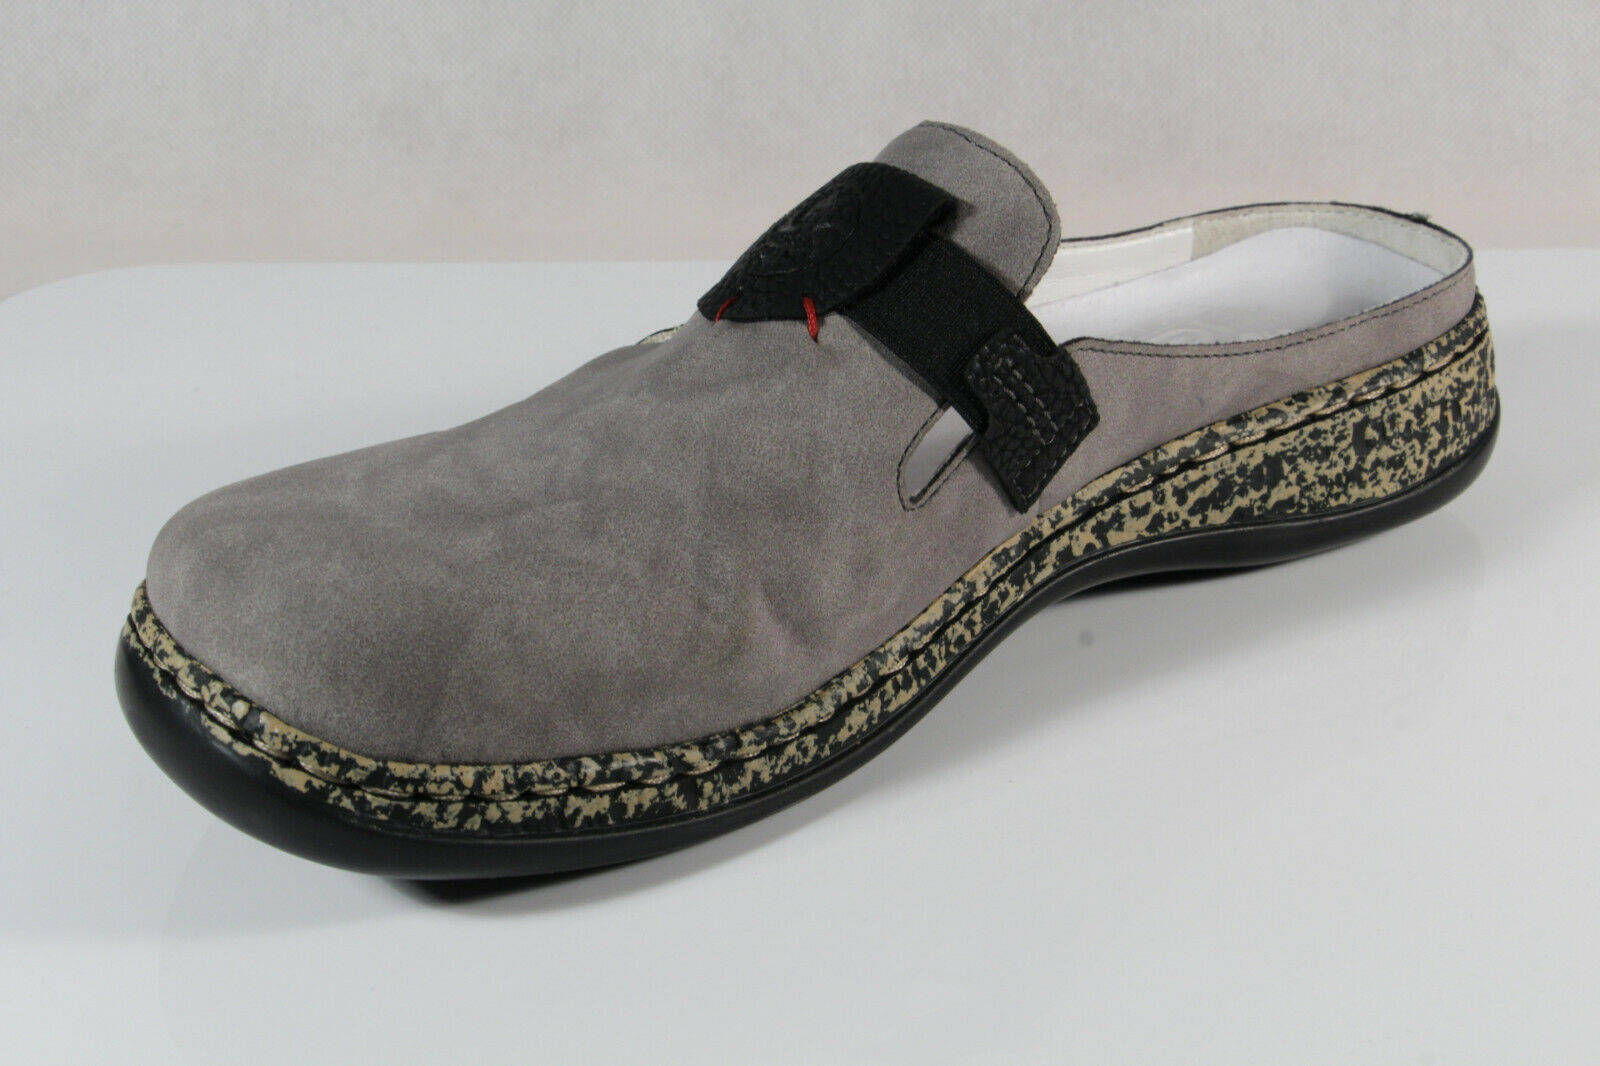 the latest 1a2a0 296ca Rieker Damen Clogs Sabot Pantoffel Hausschuhe grau 46396 NEU!!